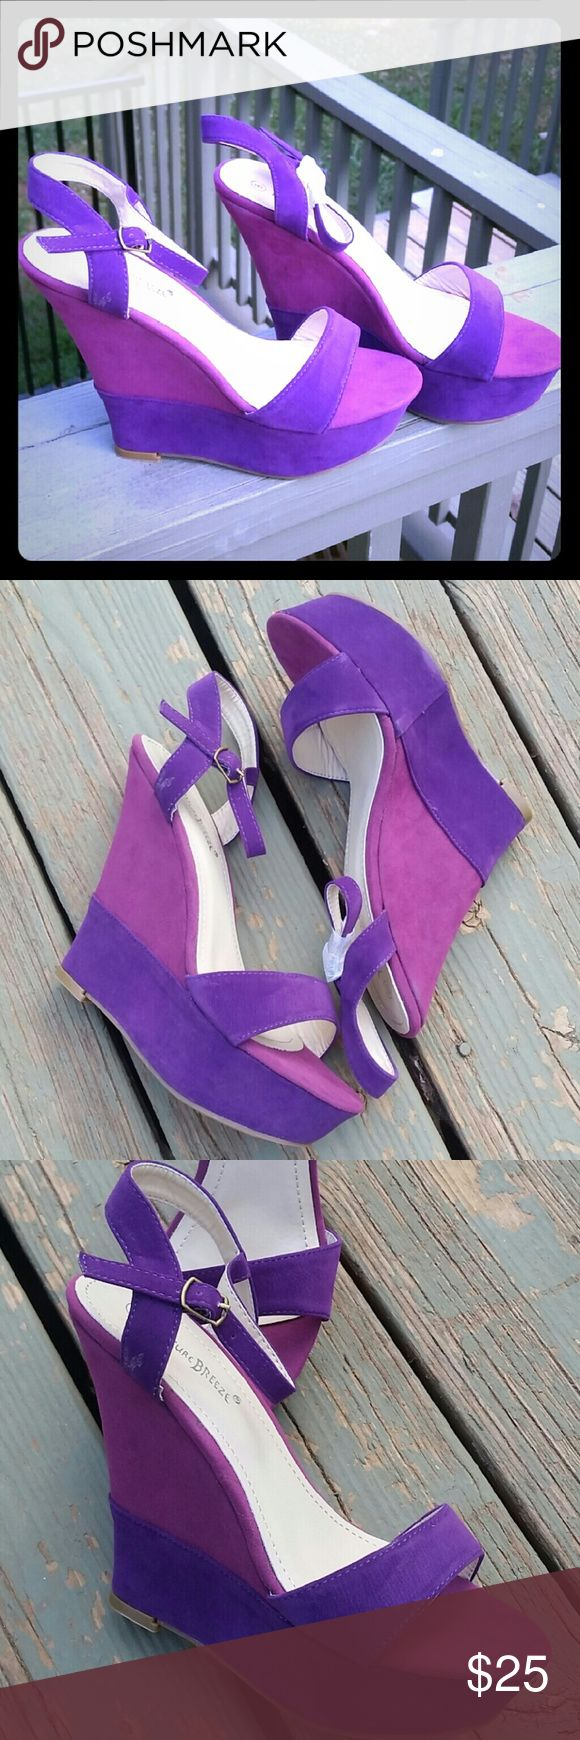 "2 Tone Purple Passion Wedges Your feet are going to look gorgeous and trendy wearing thsee 2 tone purple wedges.?? With a 4.5"" tall on a 1.5"" platform front. You are sure to gain shoe interest from all shoe lovers.?   BRAND NEW IN THE BOX Shoes Wedges"